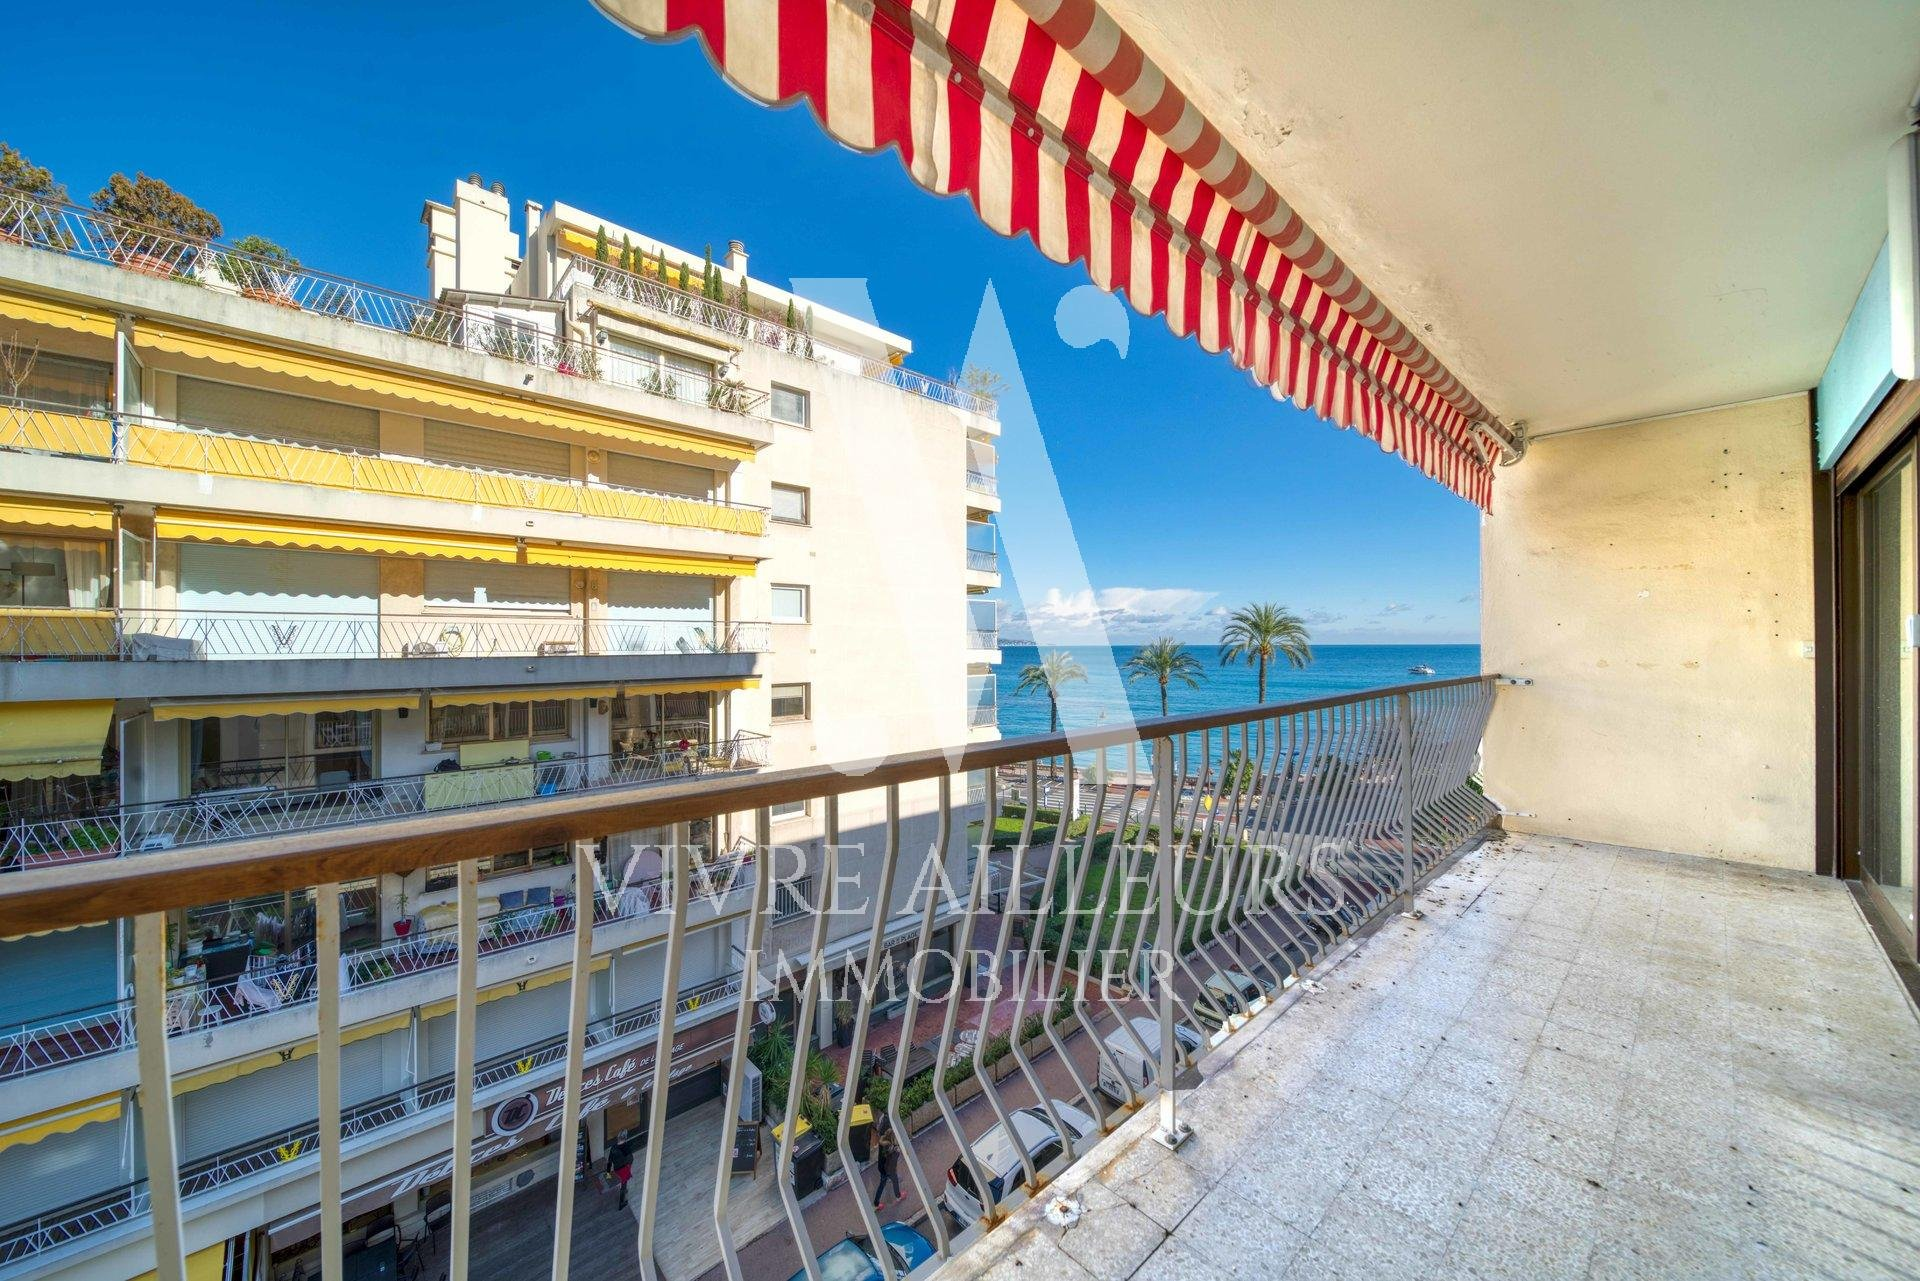 Roquebrune Cap Martin - Beach - 2 rooms terrace - balcony - cellar